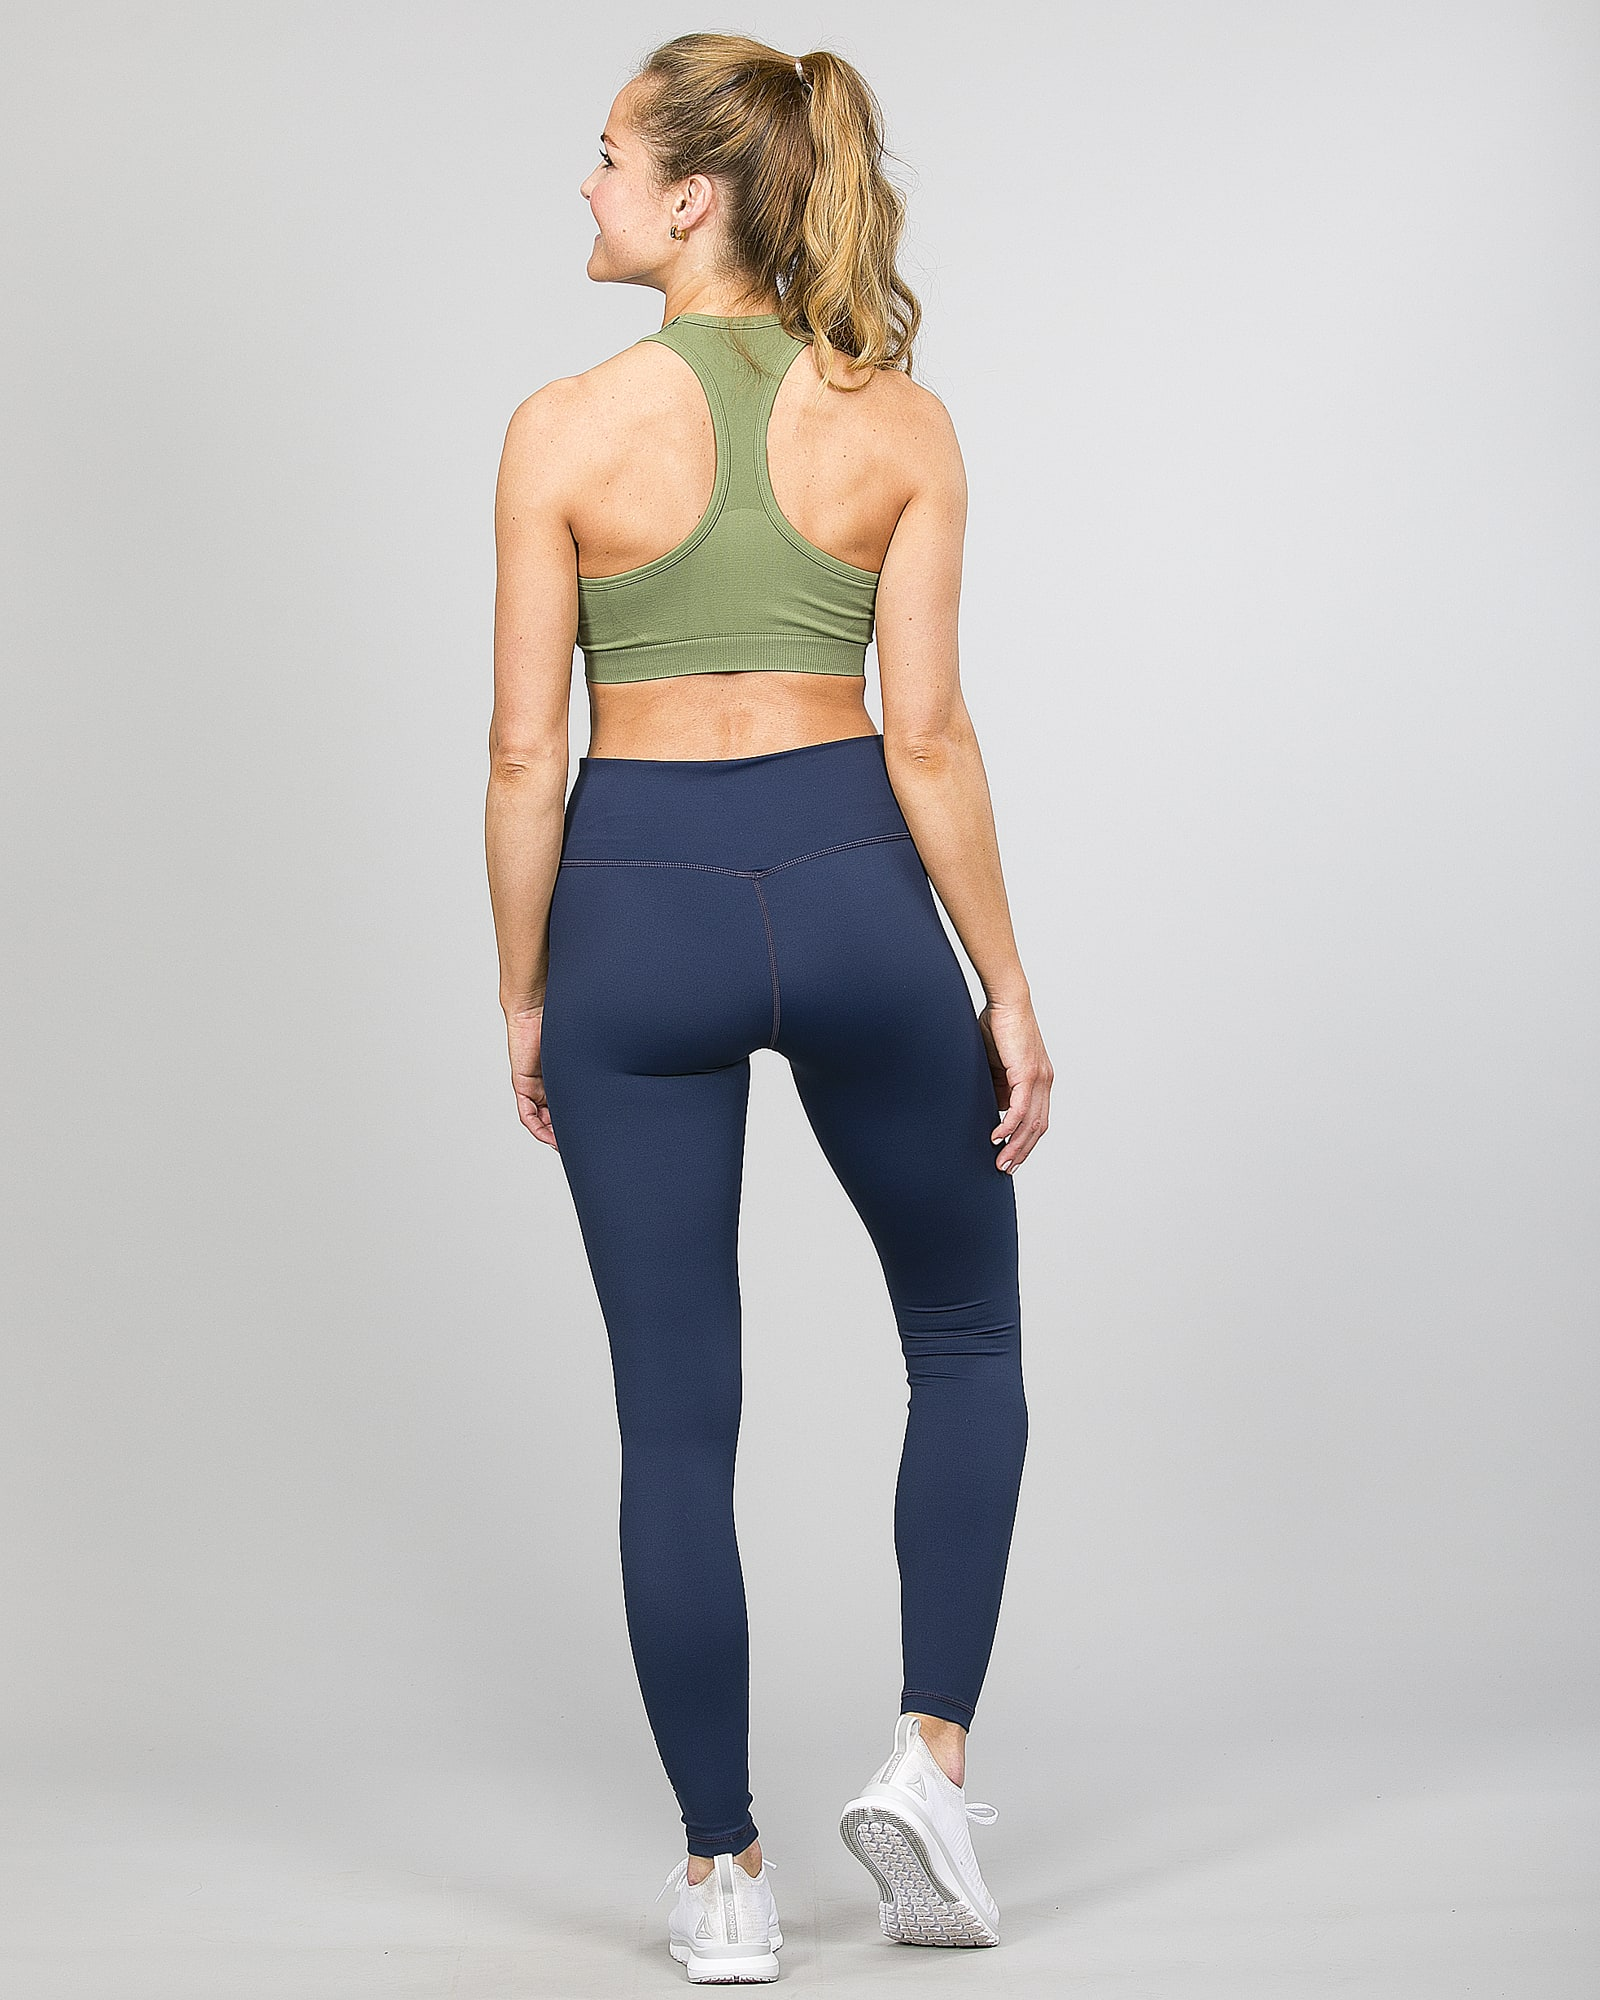 Famme Essential High Waist Legging - Midnight Blue ehwt-mb and Drop It Sports Bra Army Green vhwl-ag g